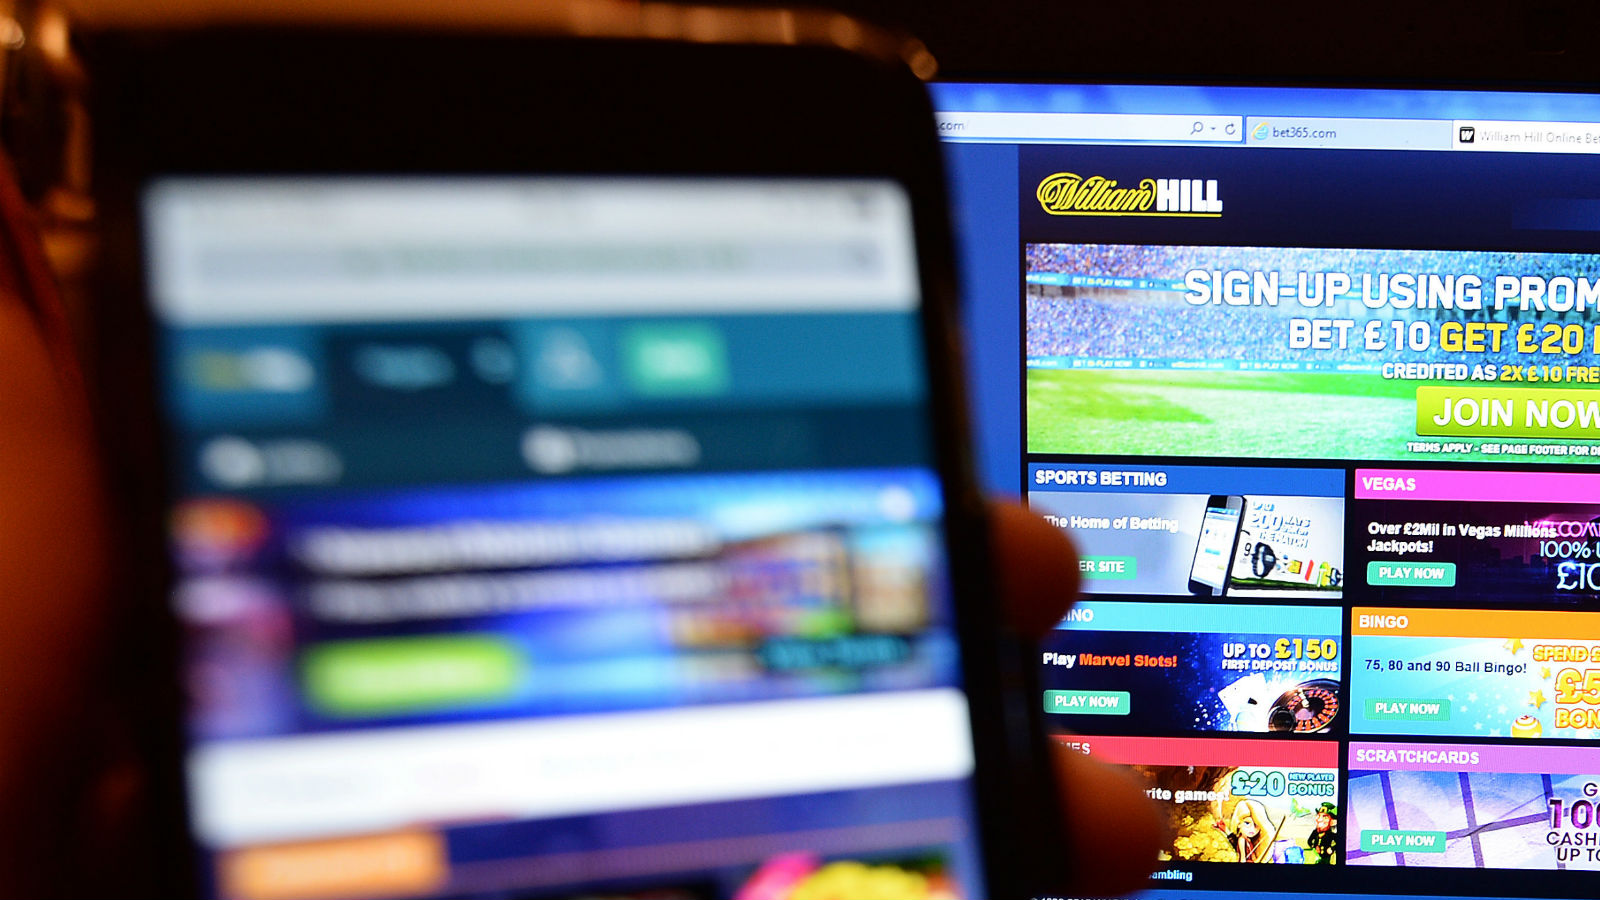 William Hill Mobile Sports Betting Apple App Live in Iowa